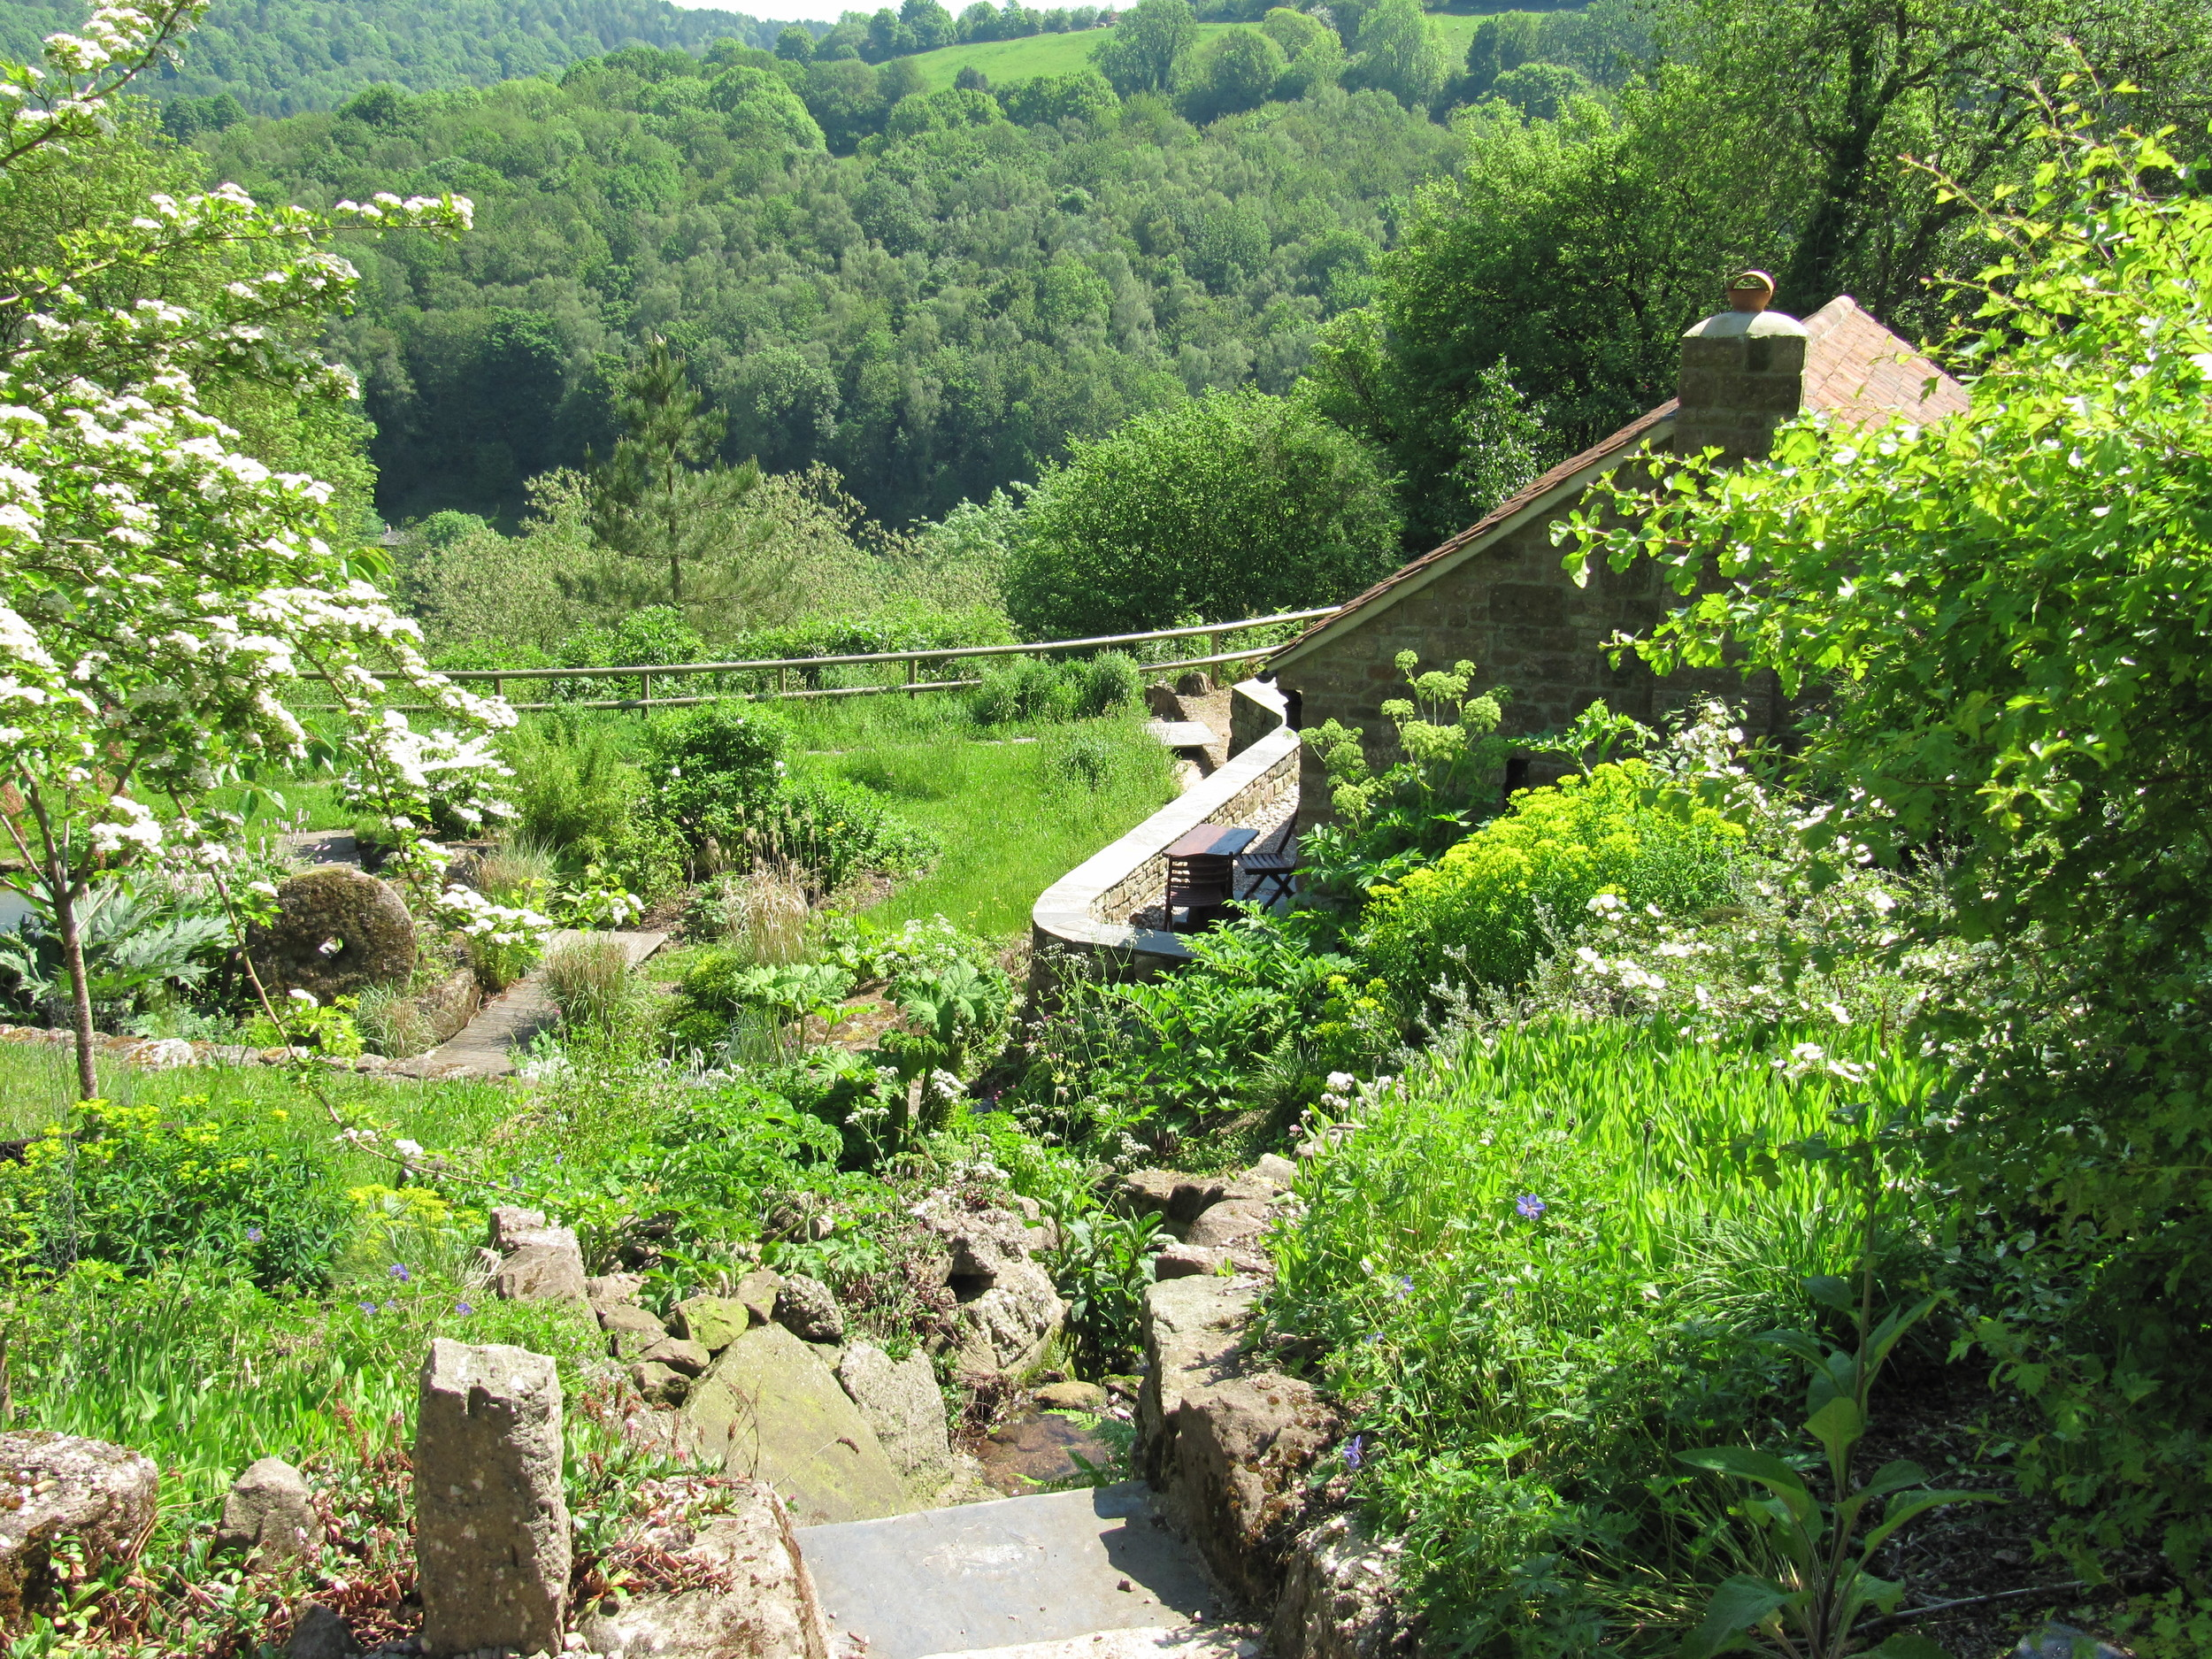 A path through a rock strewn hillside funnels the view over the garden and Wye Valley to a spectacular view of the Forest of Dean